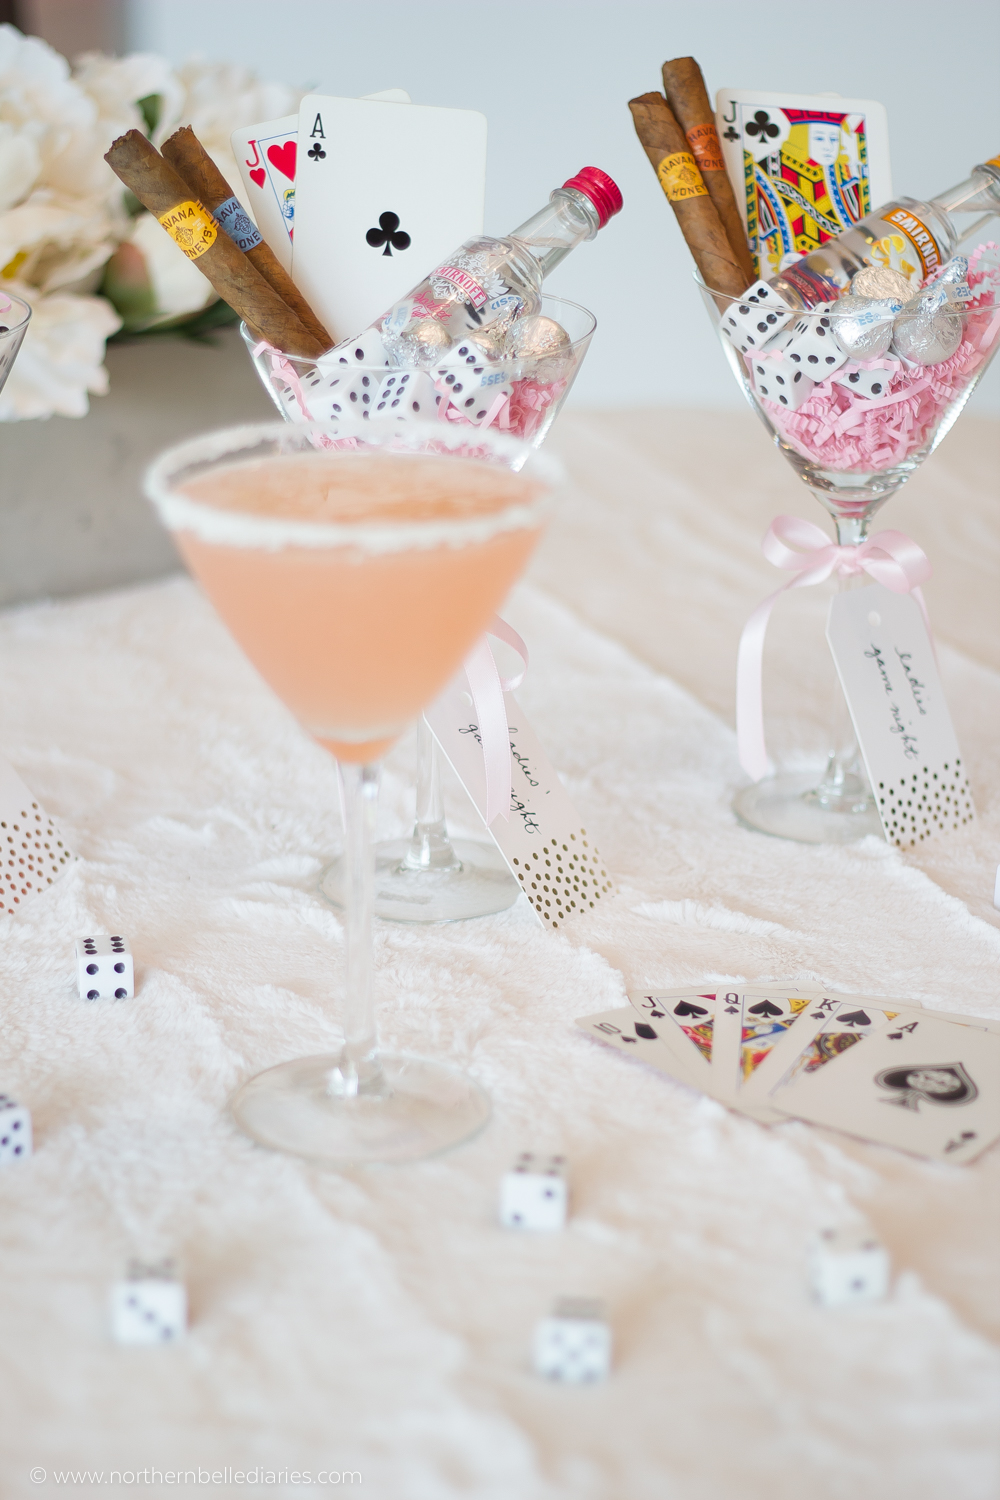 Ladies' Night gift idea + cocktail recipe